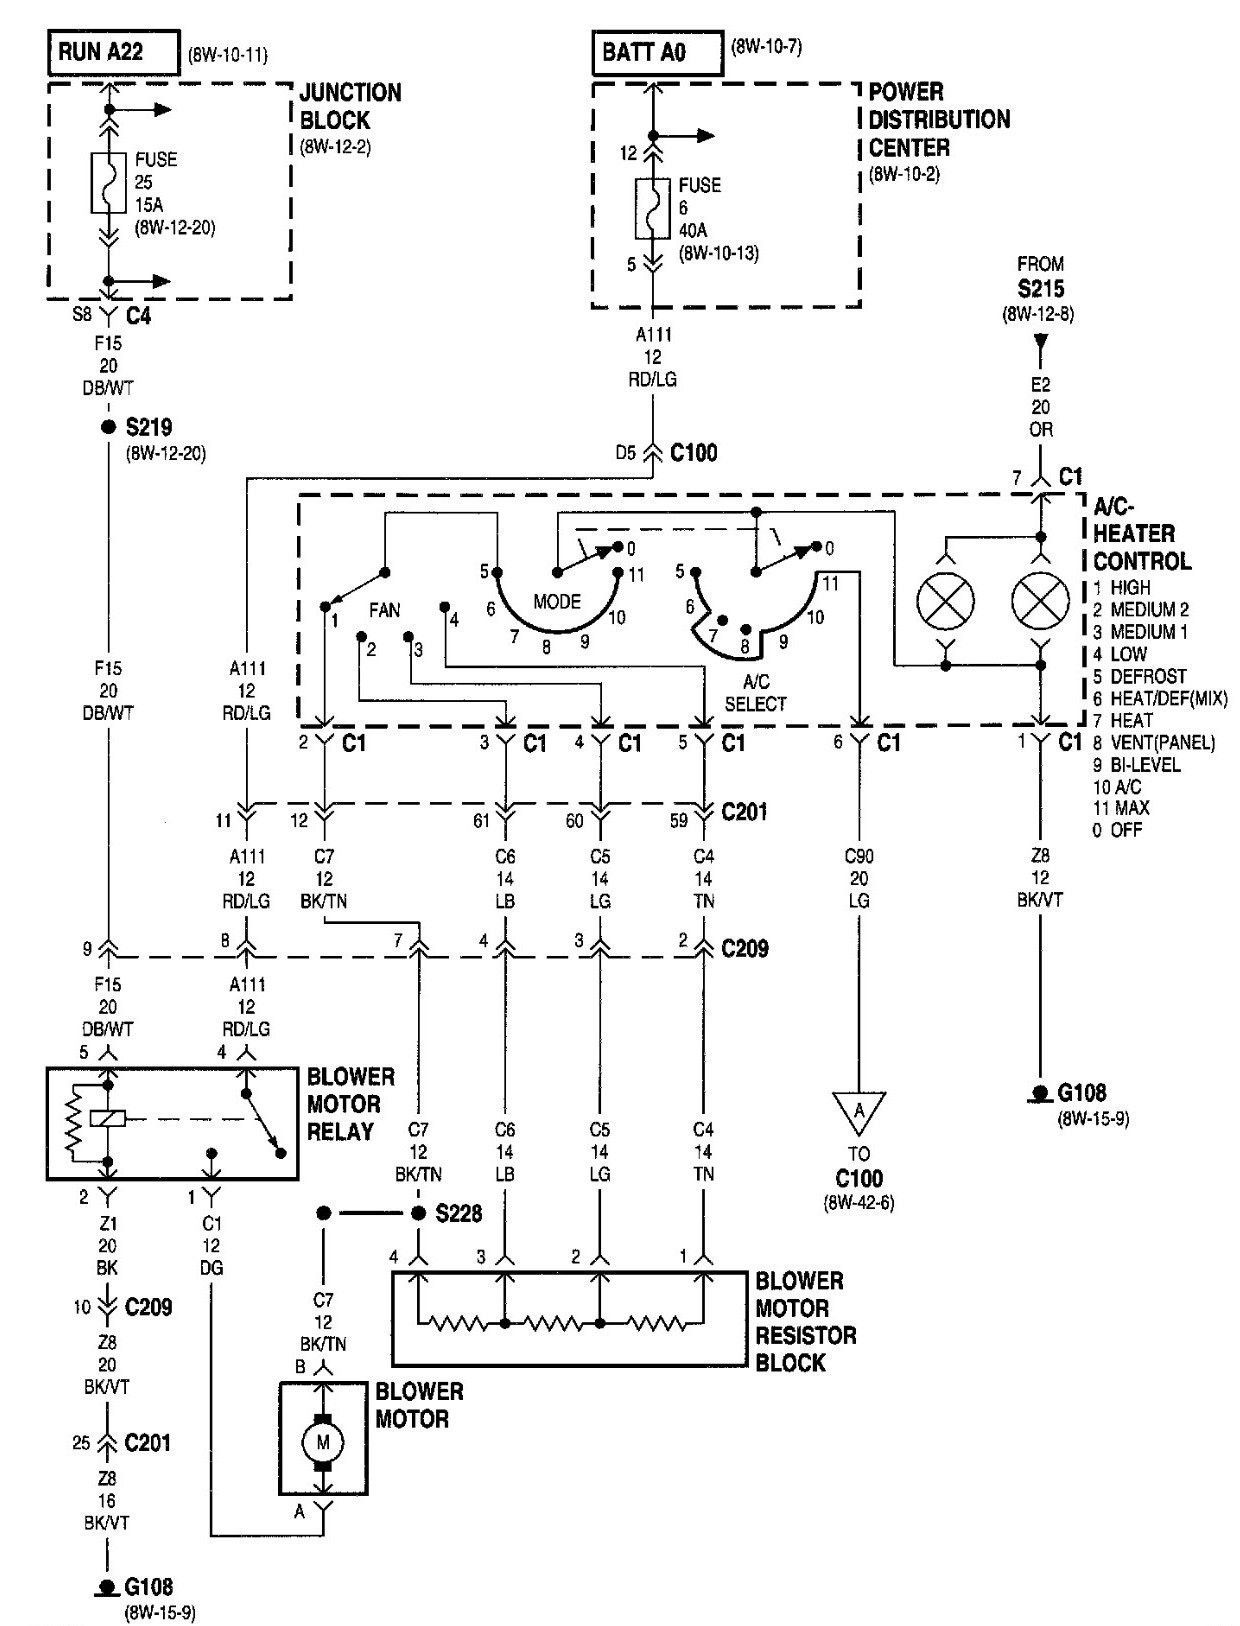 Awesome Wiring Diagram Jeep Grand Cherokee Diagrams Digramssample Diagramimages Wiringdiagramsample Wiringdiagr Power Amplifiers Audio Amplifier Amplifier